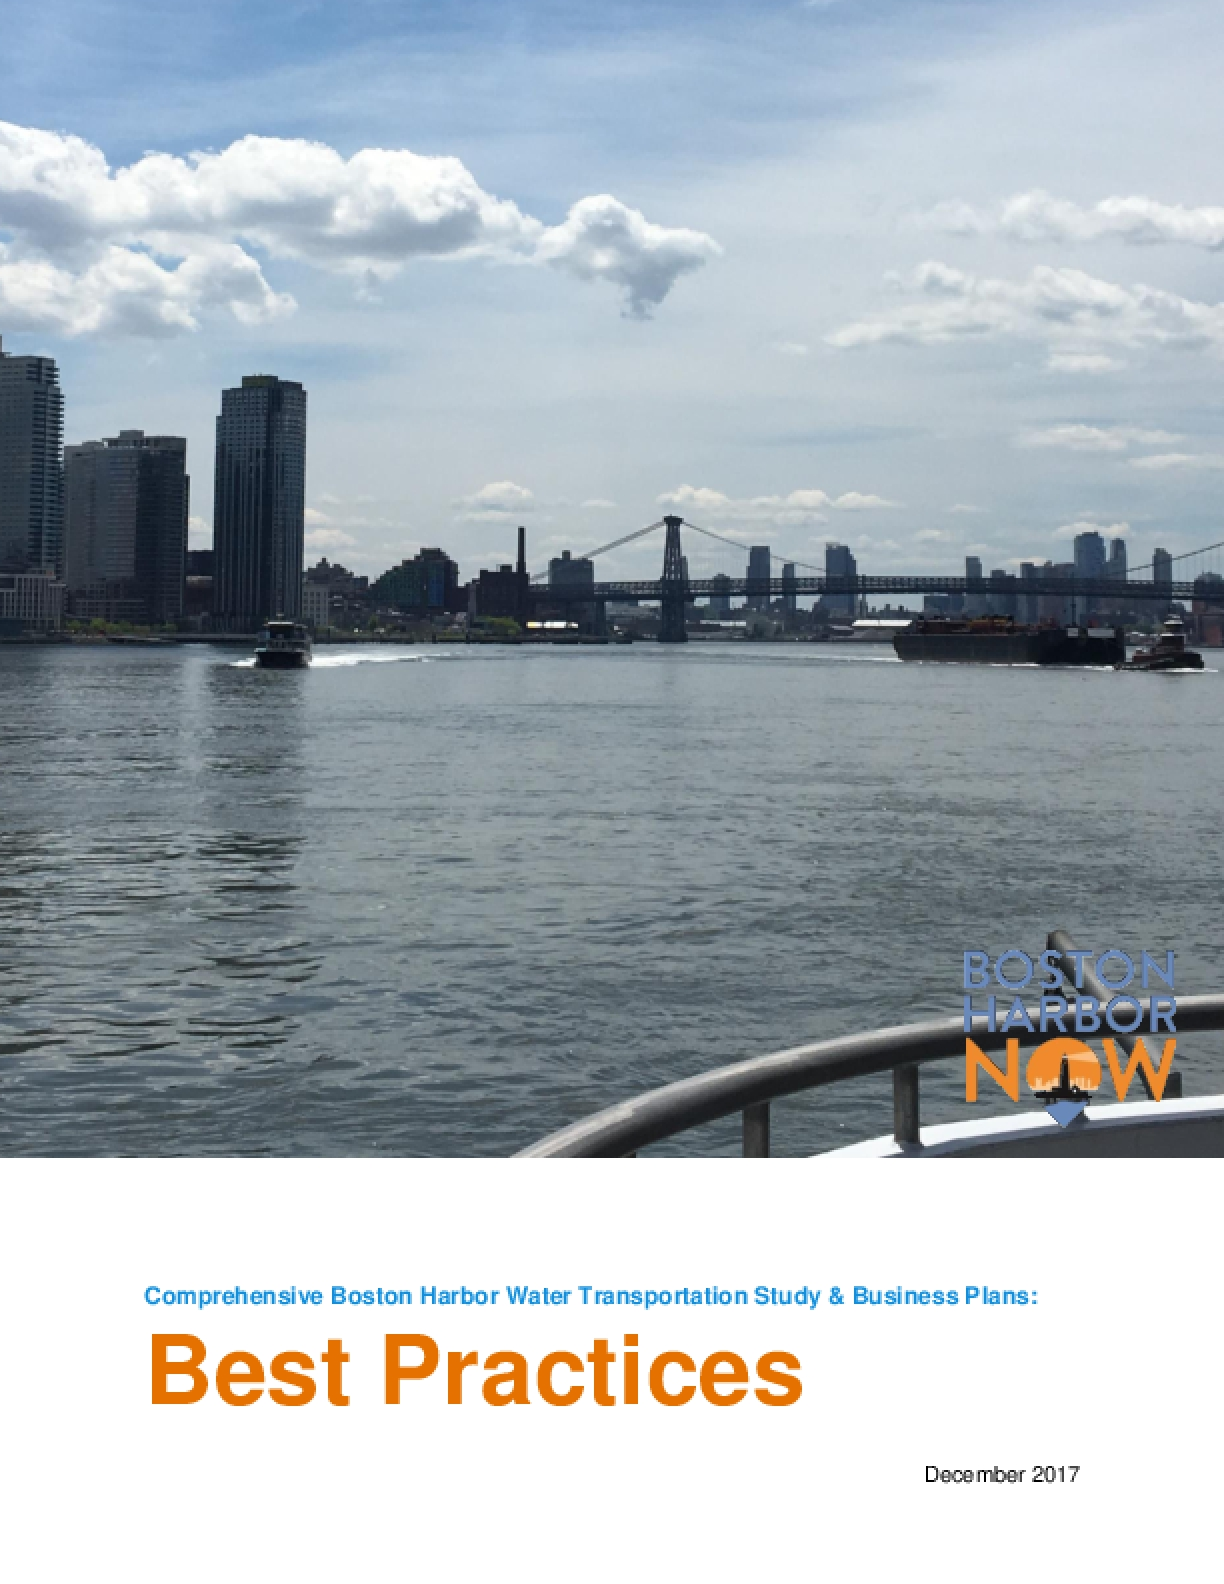 Comprehensive Boston Harbor Water Transportation Study & Business Plan: Best Practices